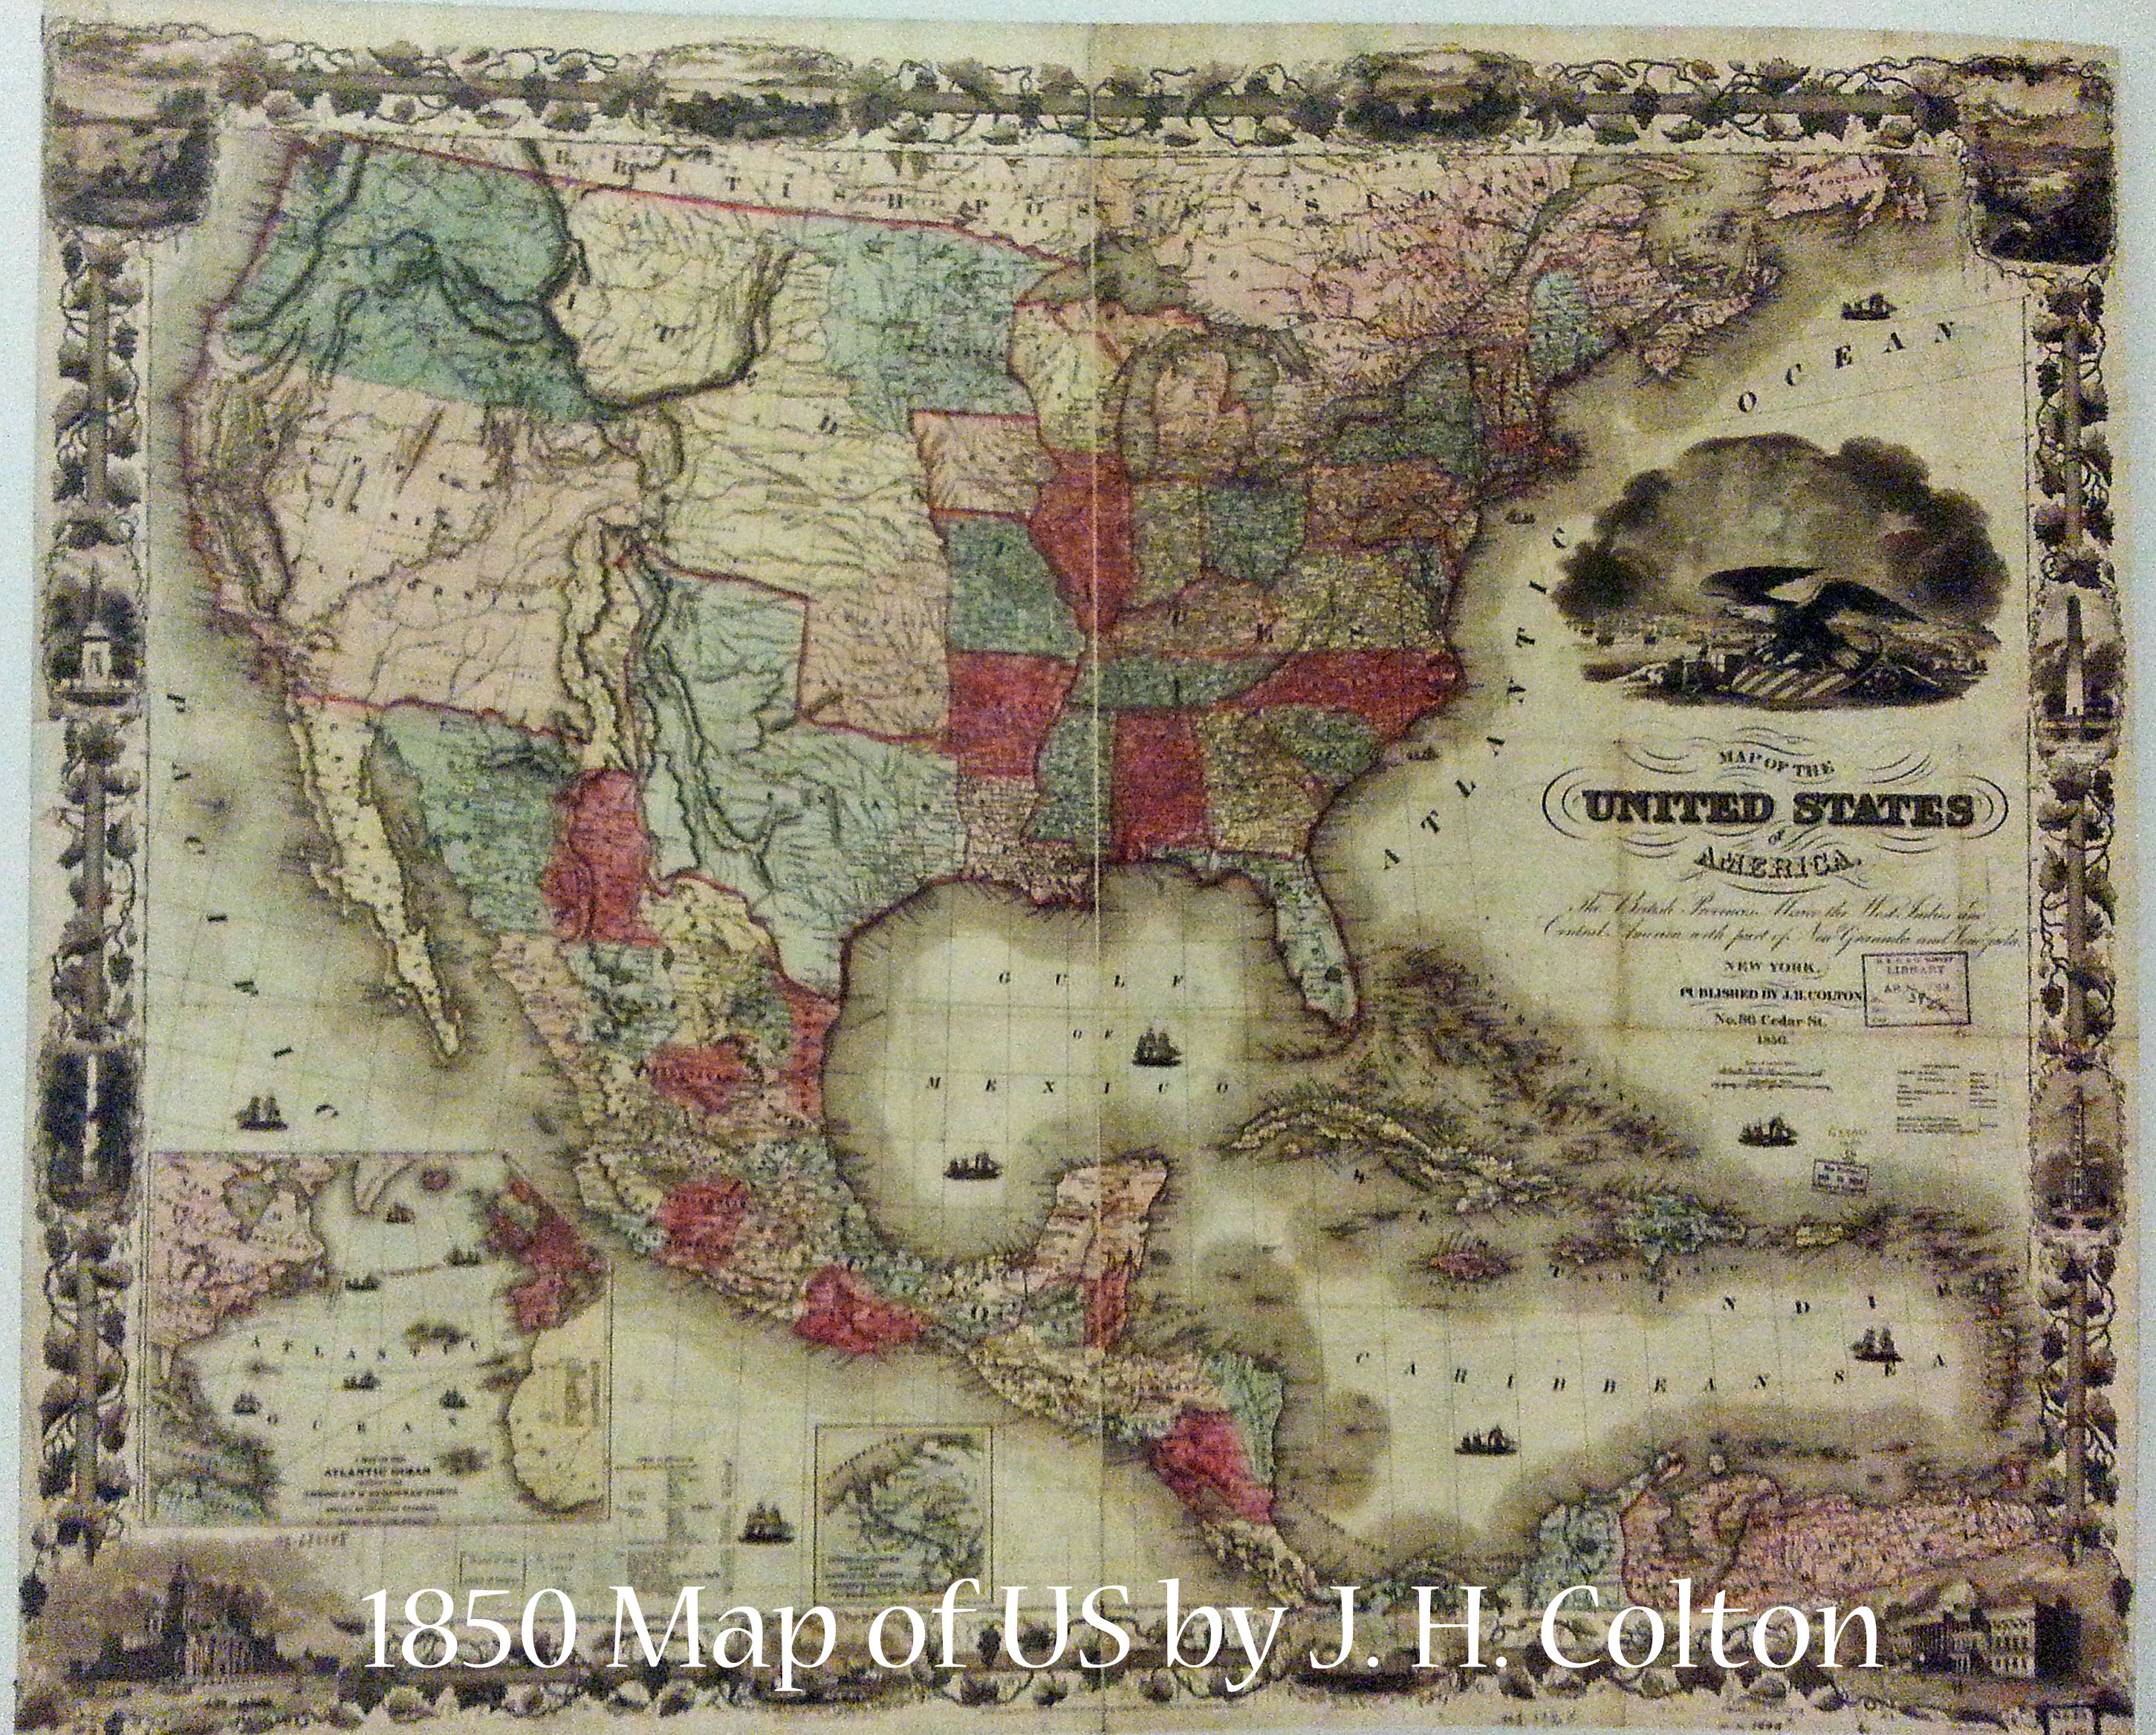 1850 US Map by J H Colton | Book Addicts